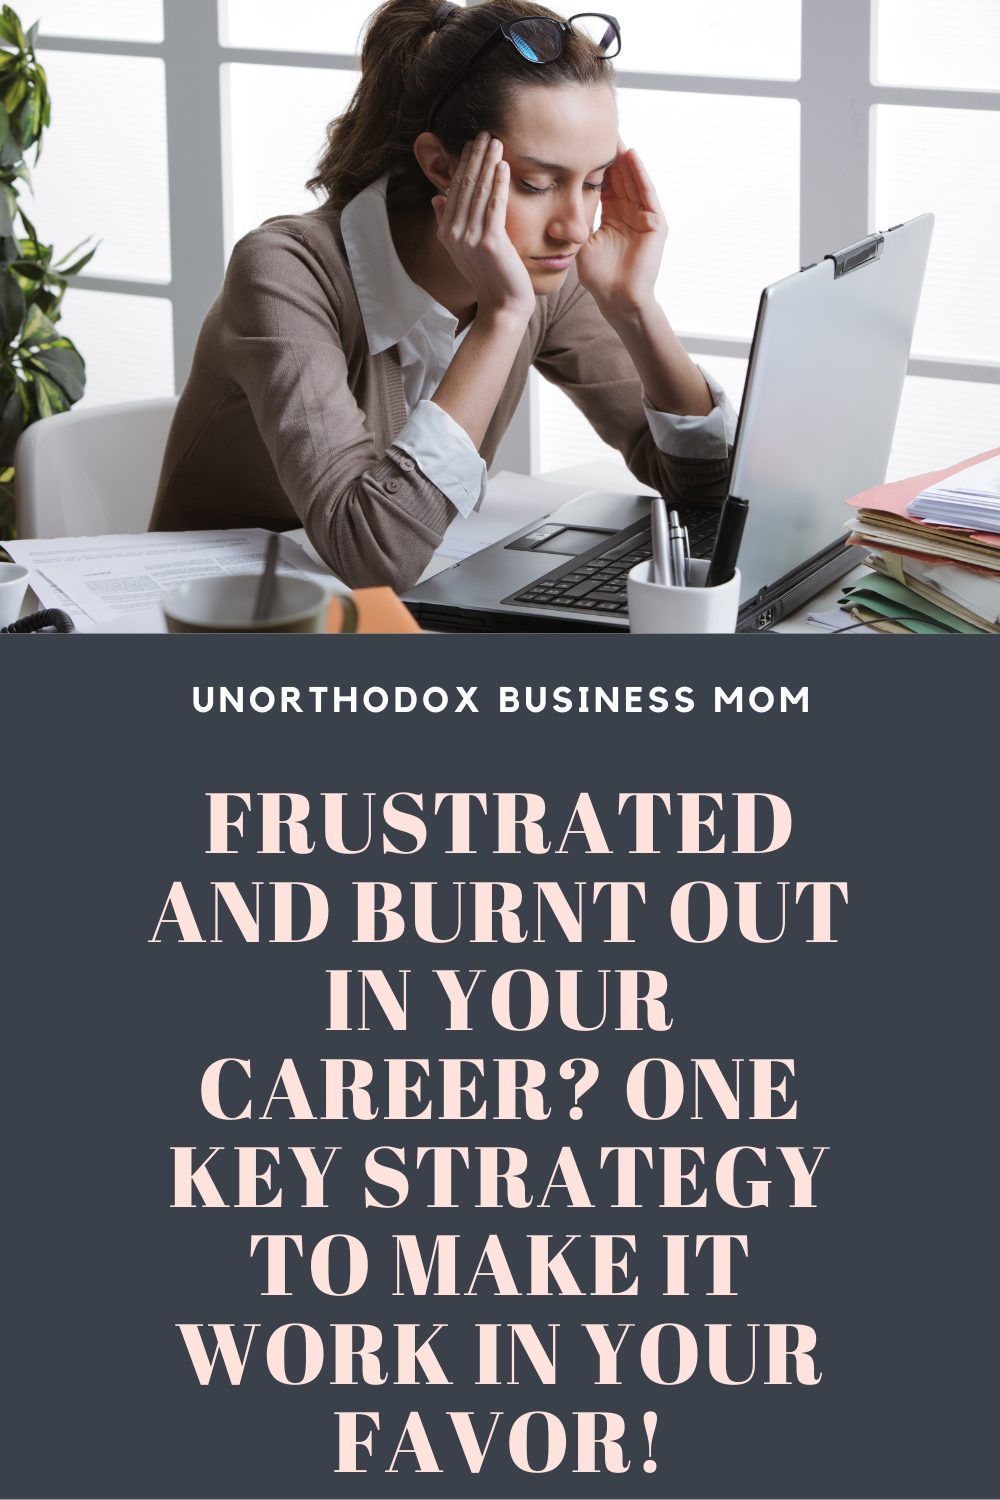 If you feeling burnt out and frustrated in your career, you may be thinking it's time to try something new. I share 1 strategy to help you change your perspective.